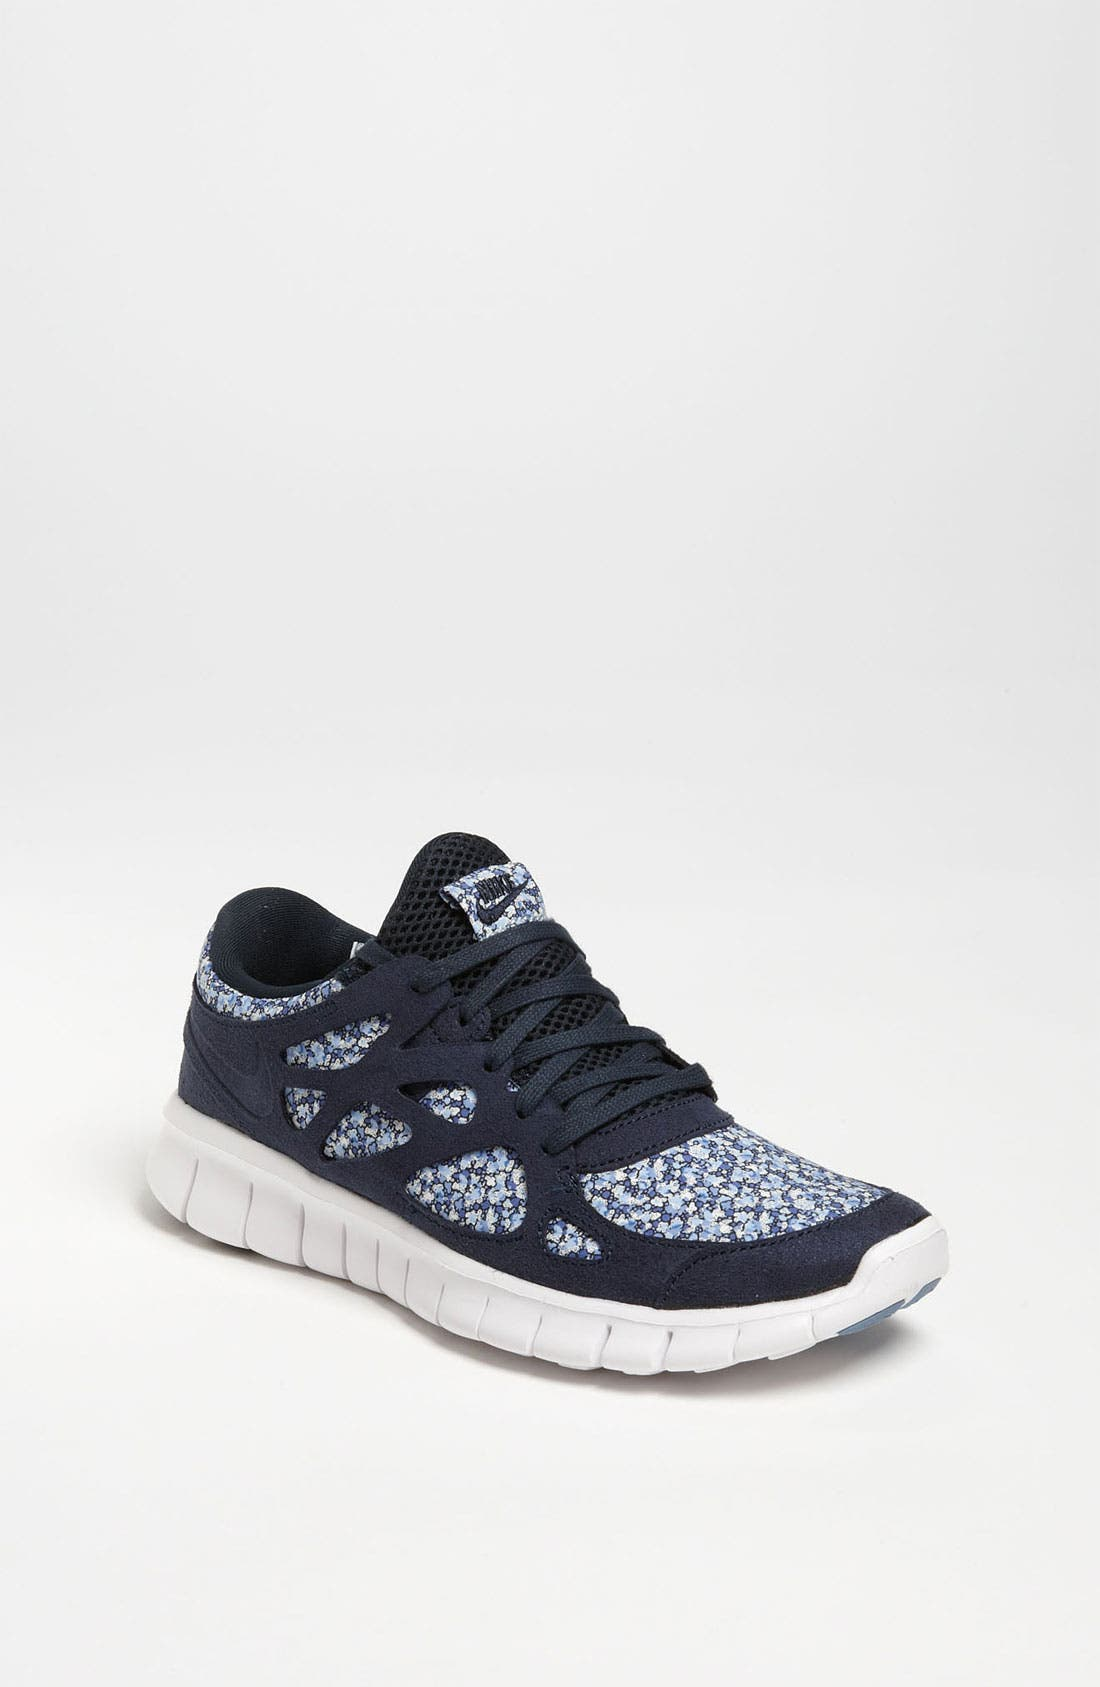 Alternate Image 1 Selected - Nike 'Free Run 2 Liberty' Sneaker (Women)